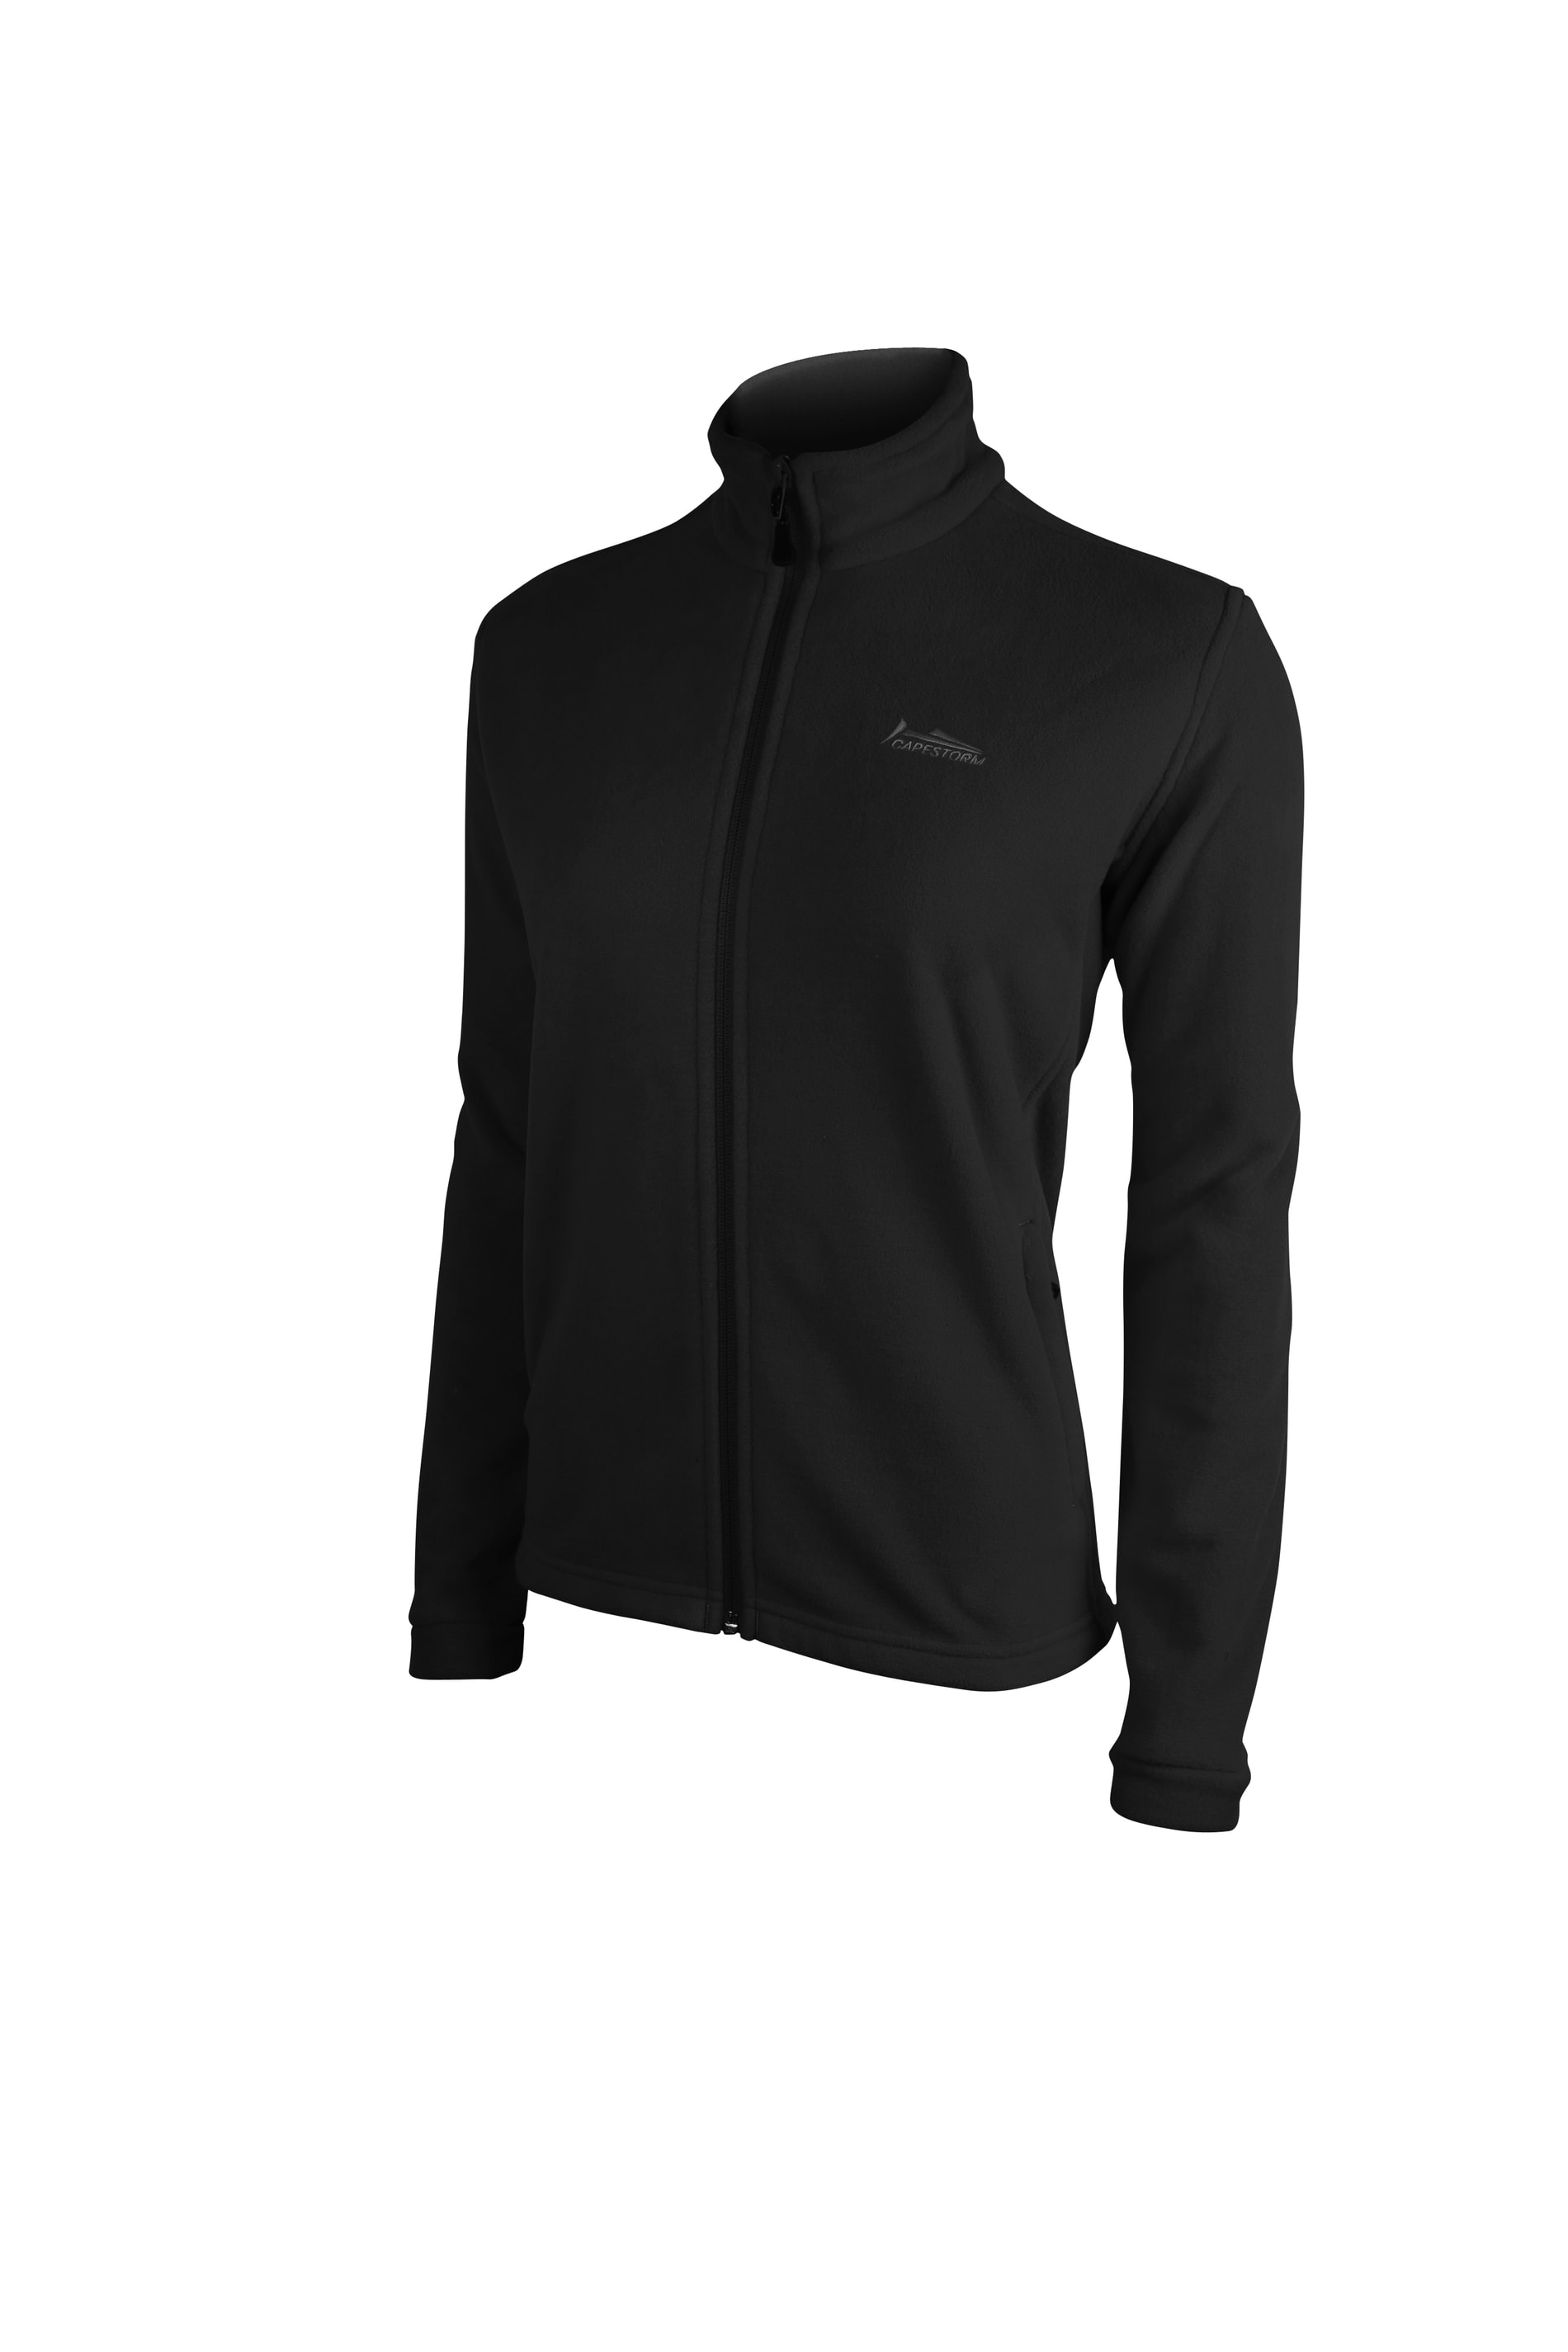 Cape Storm Women's Essential Jacket